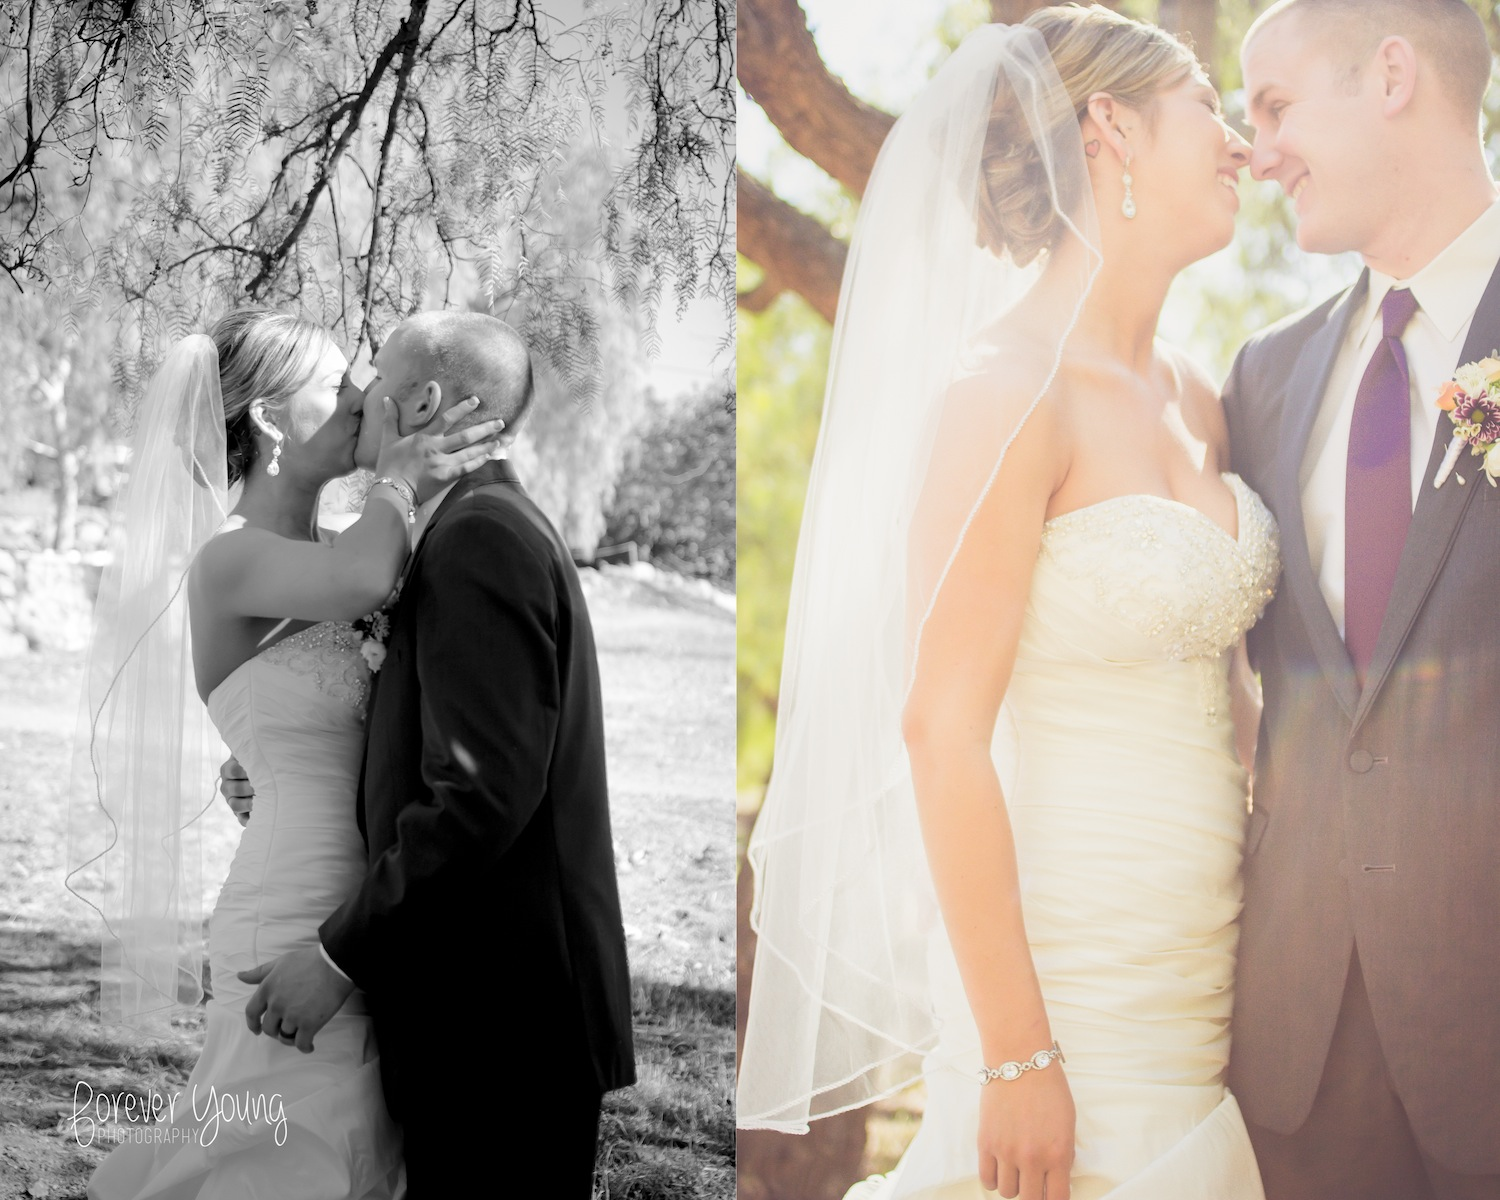 Taylor & Travis York | Red Barn Ranch Wedding | San Diego, CA 3